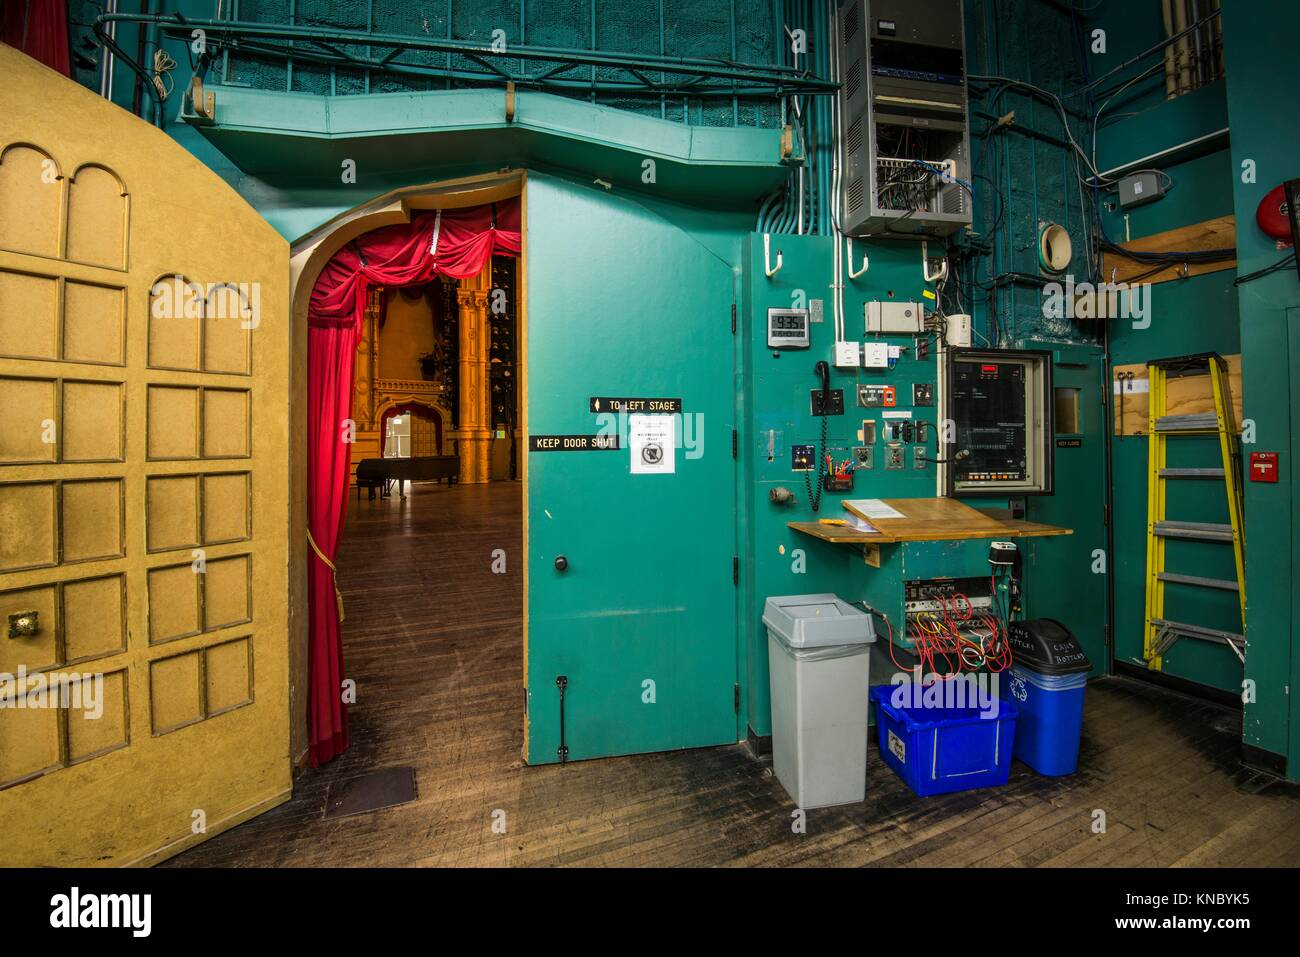 Backstage at the Orpheum Theatre, downtown Vancouver, BC, Canada. - Stock Image